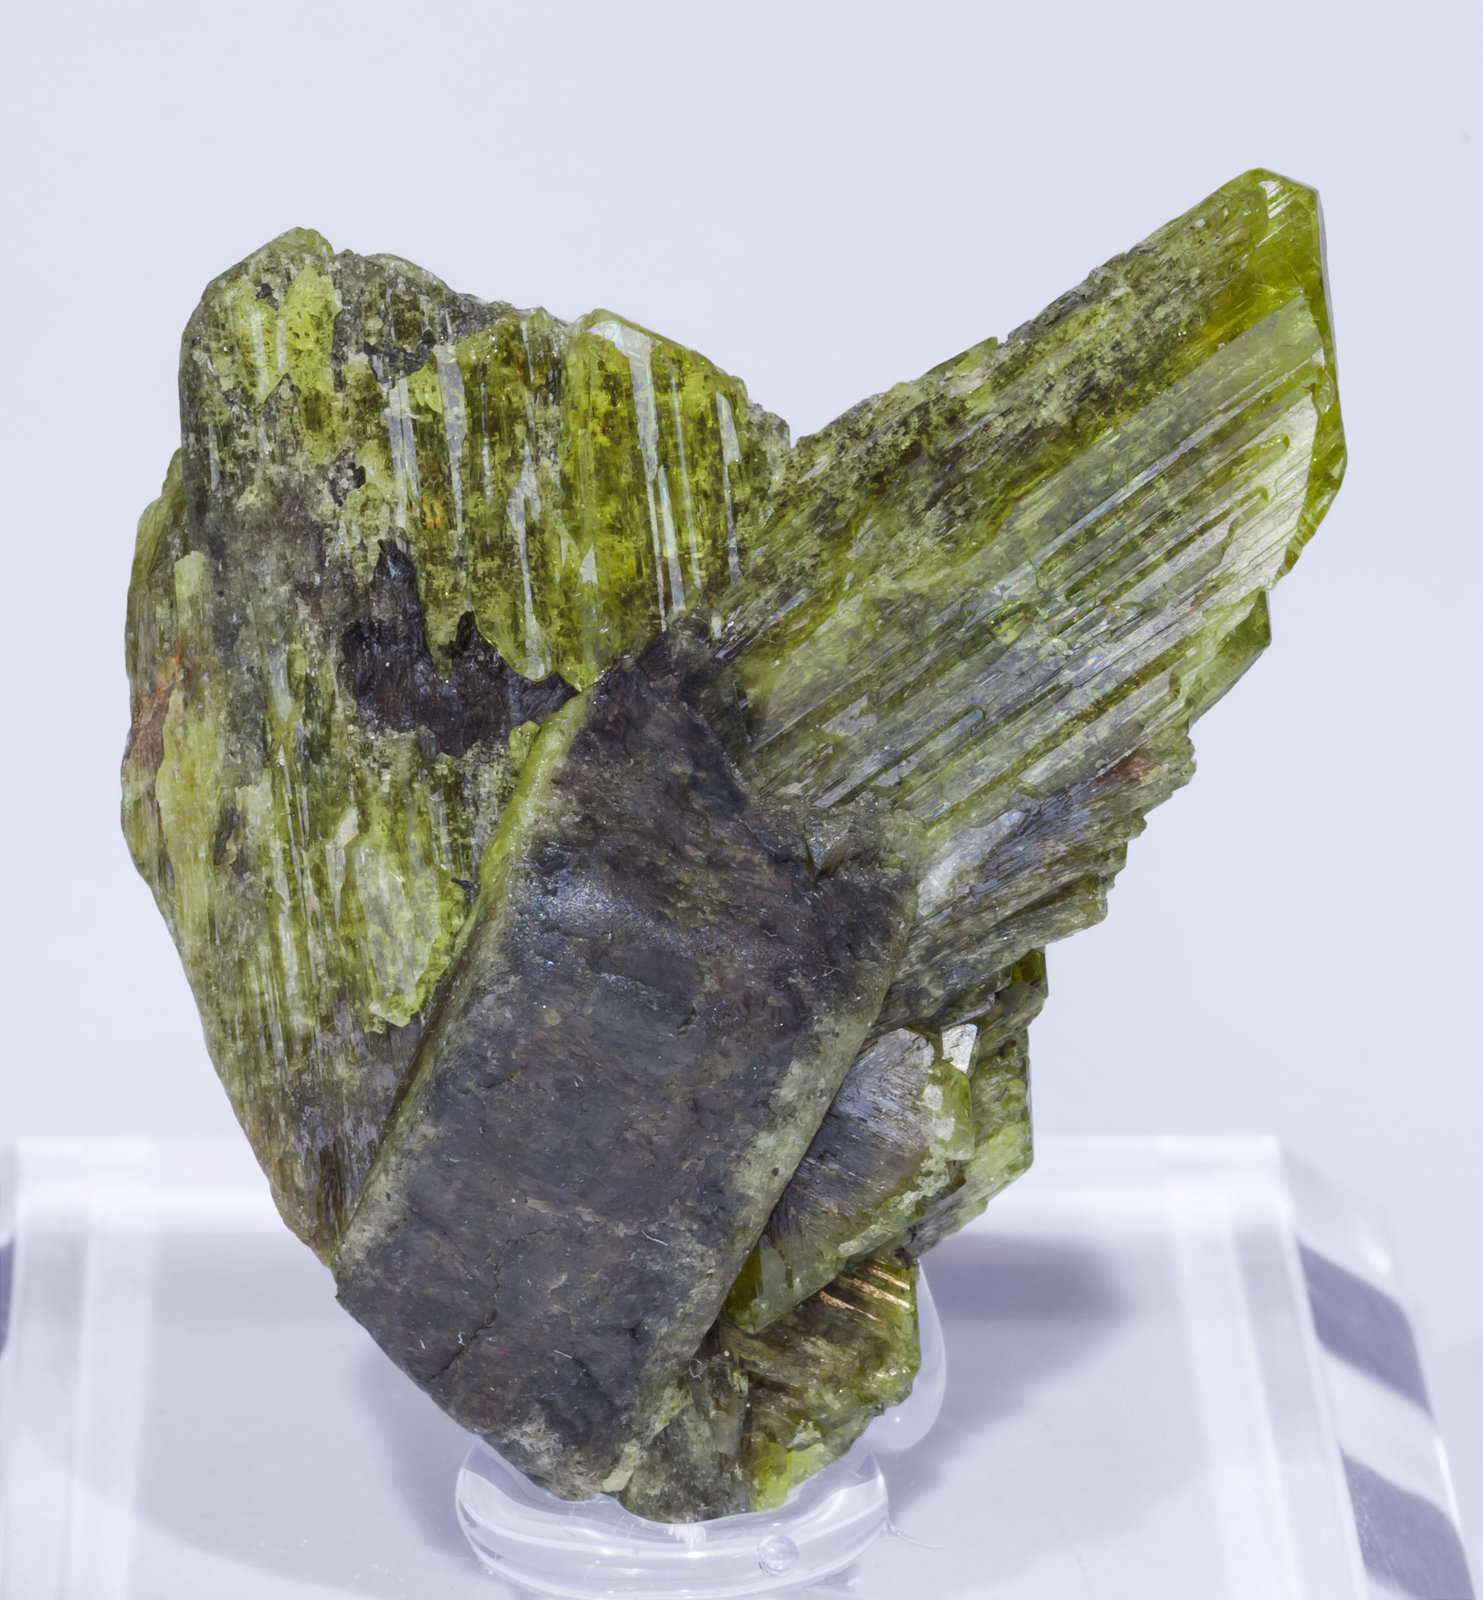 specimens/s_imagesAJ1/Chrysoberyl-MG67AJ1f.jpg